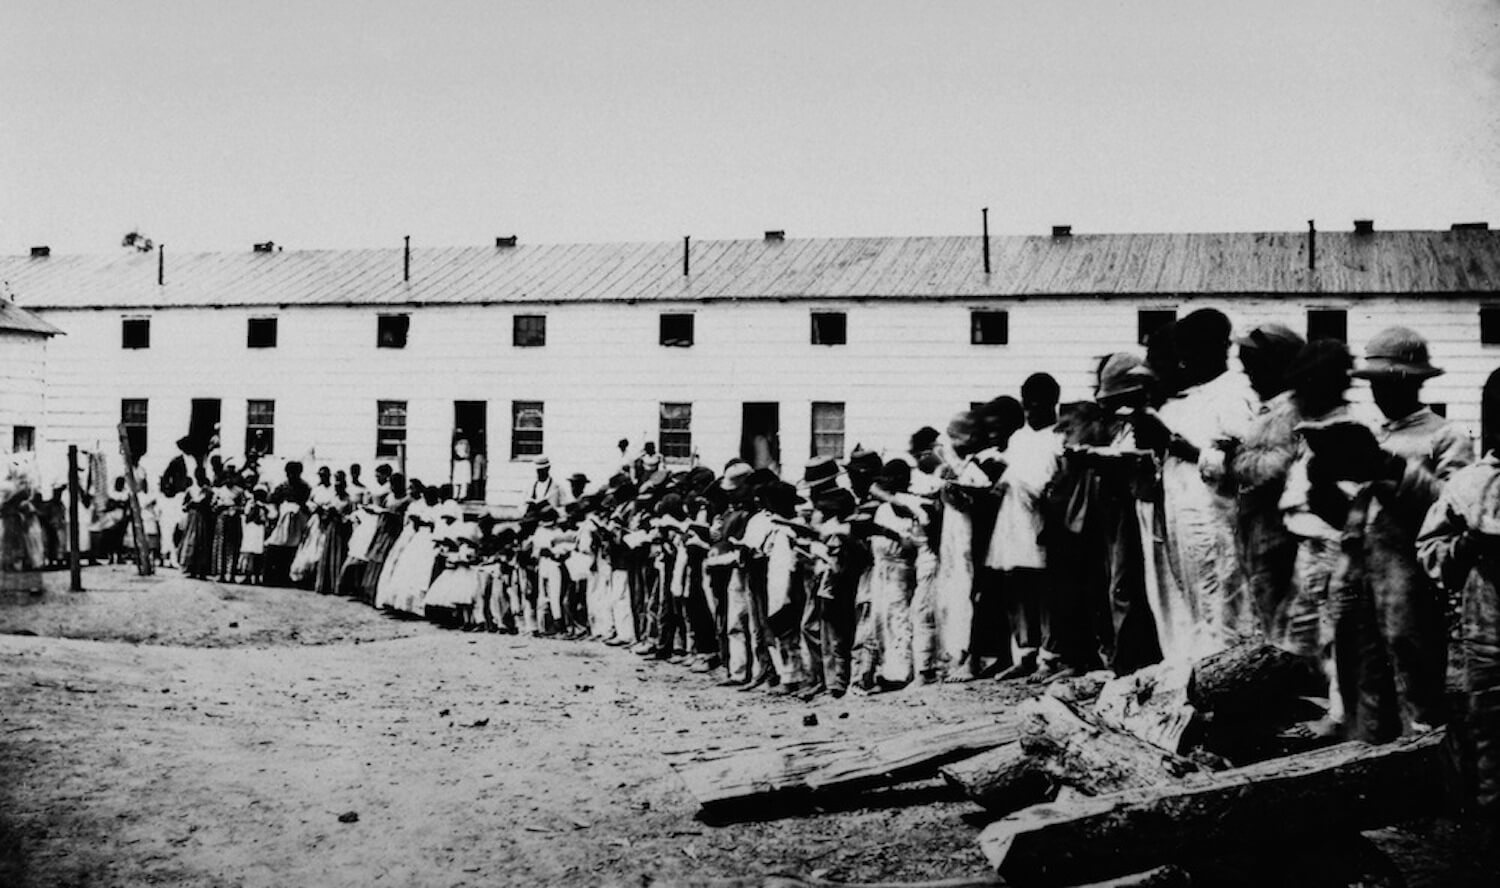 Former Slaves at Freedmen's Village